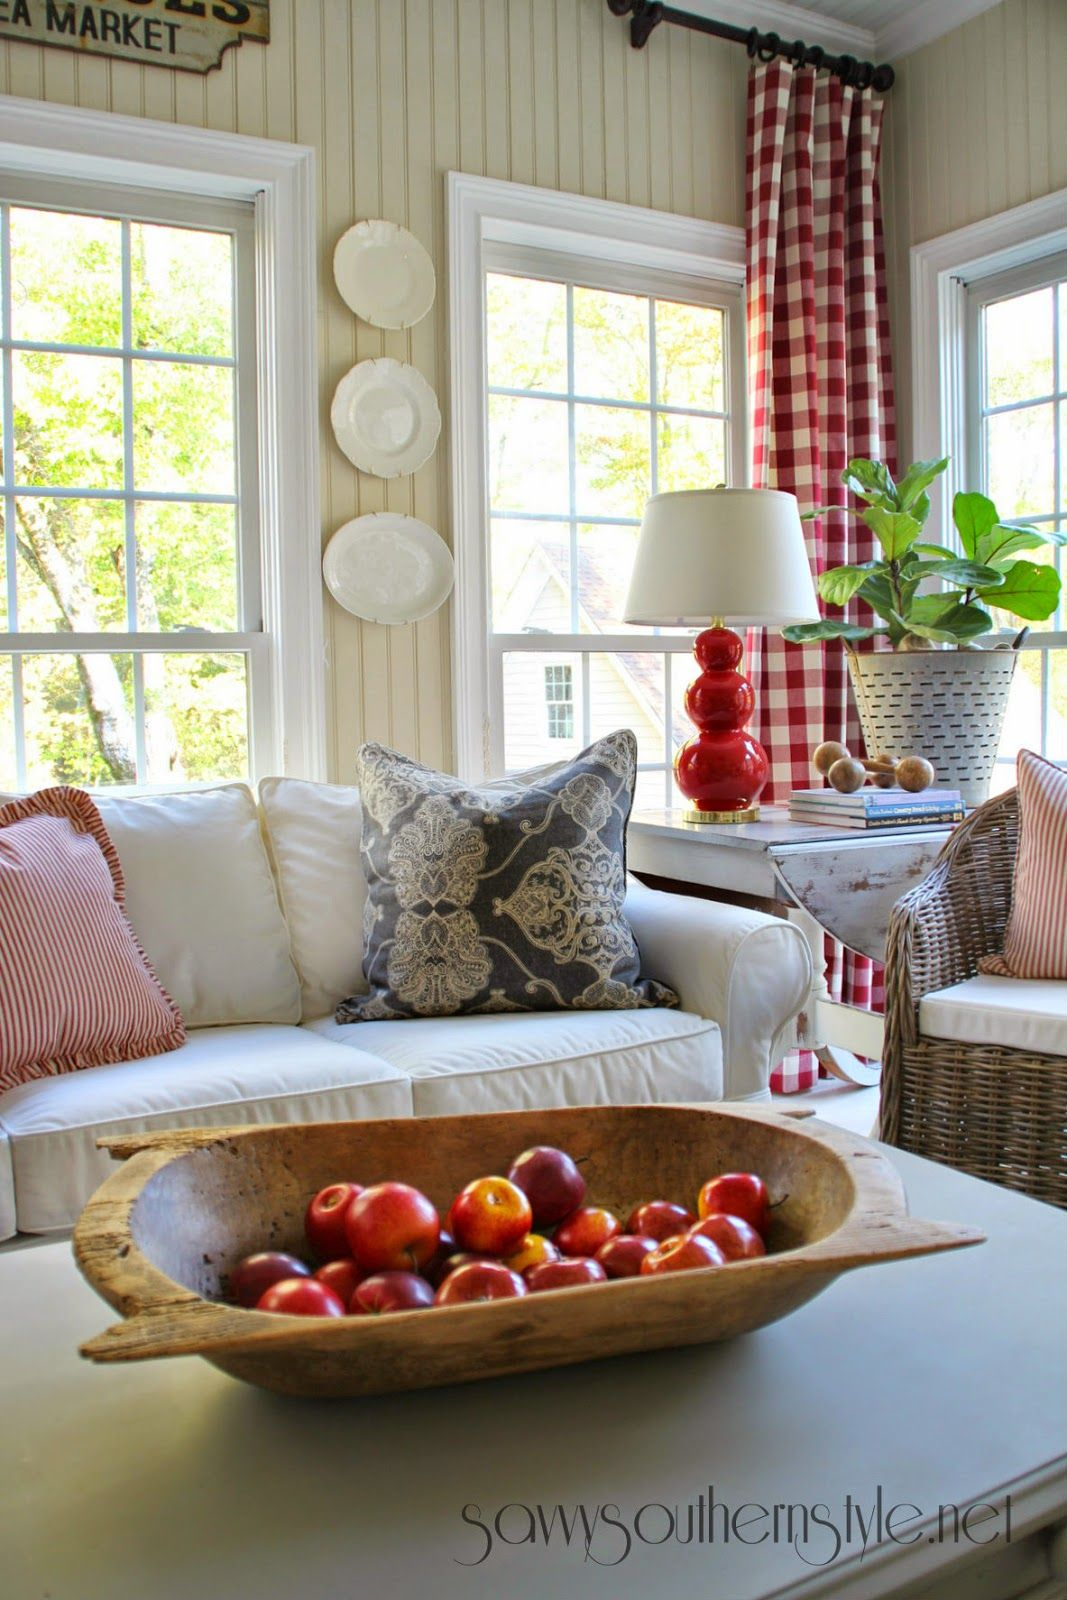 Savvy Southern Style: Decorating With Red | salon | Pinterest ...